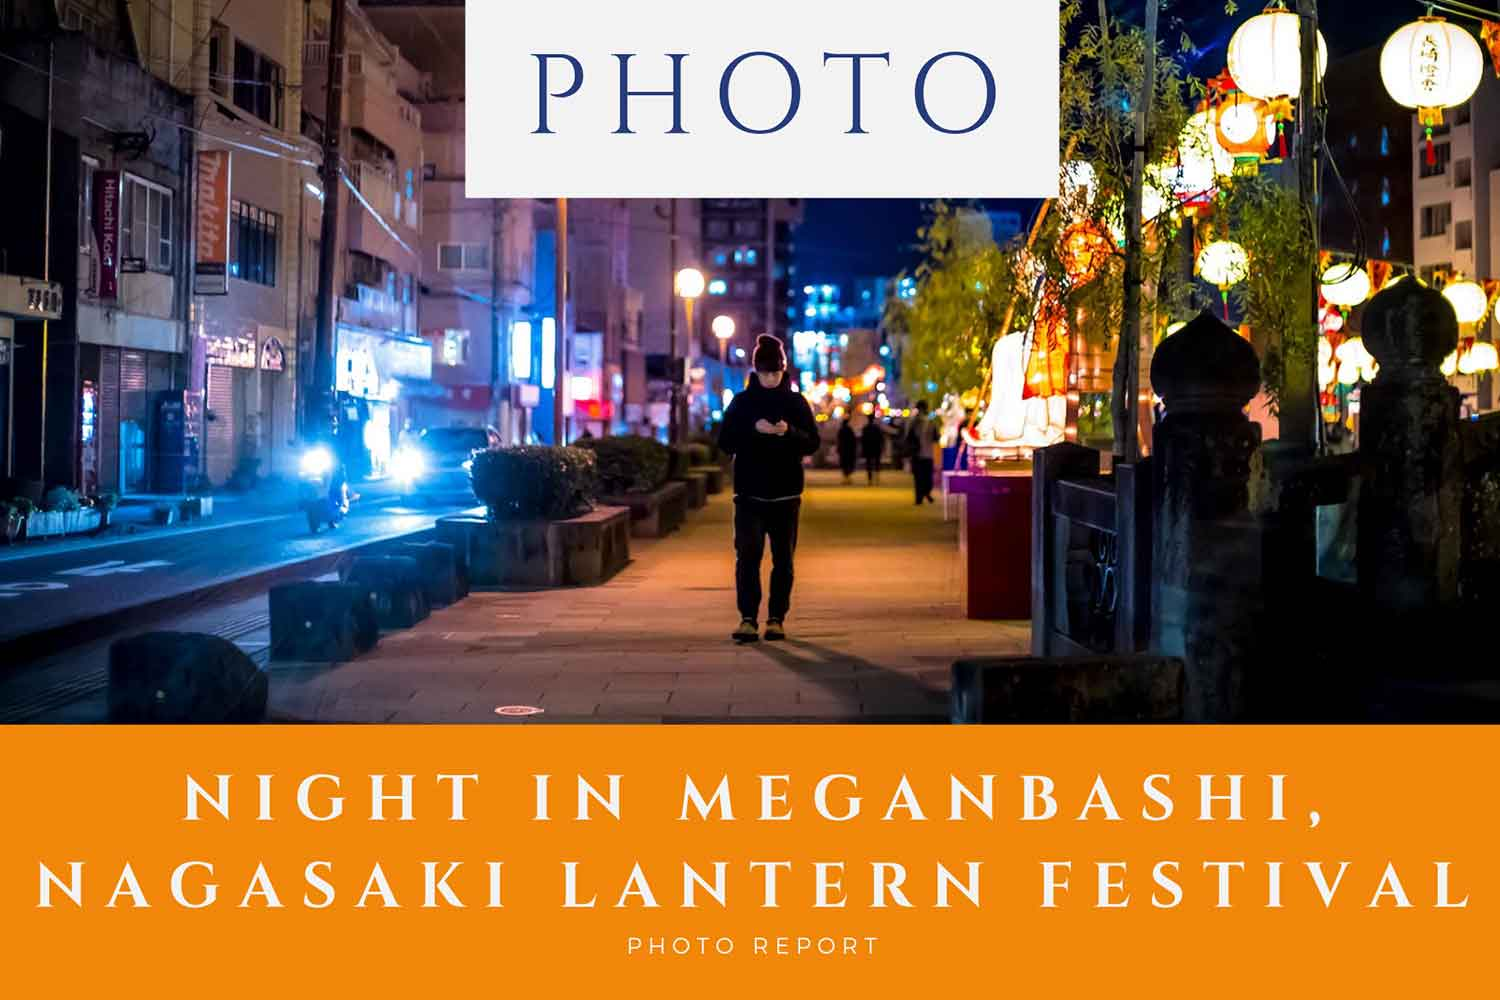 Night-in-Meganbashi,-Nagasaki-Lantern-Festival